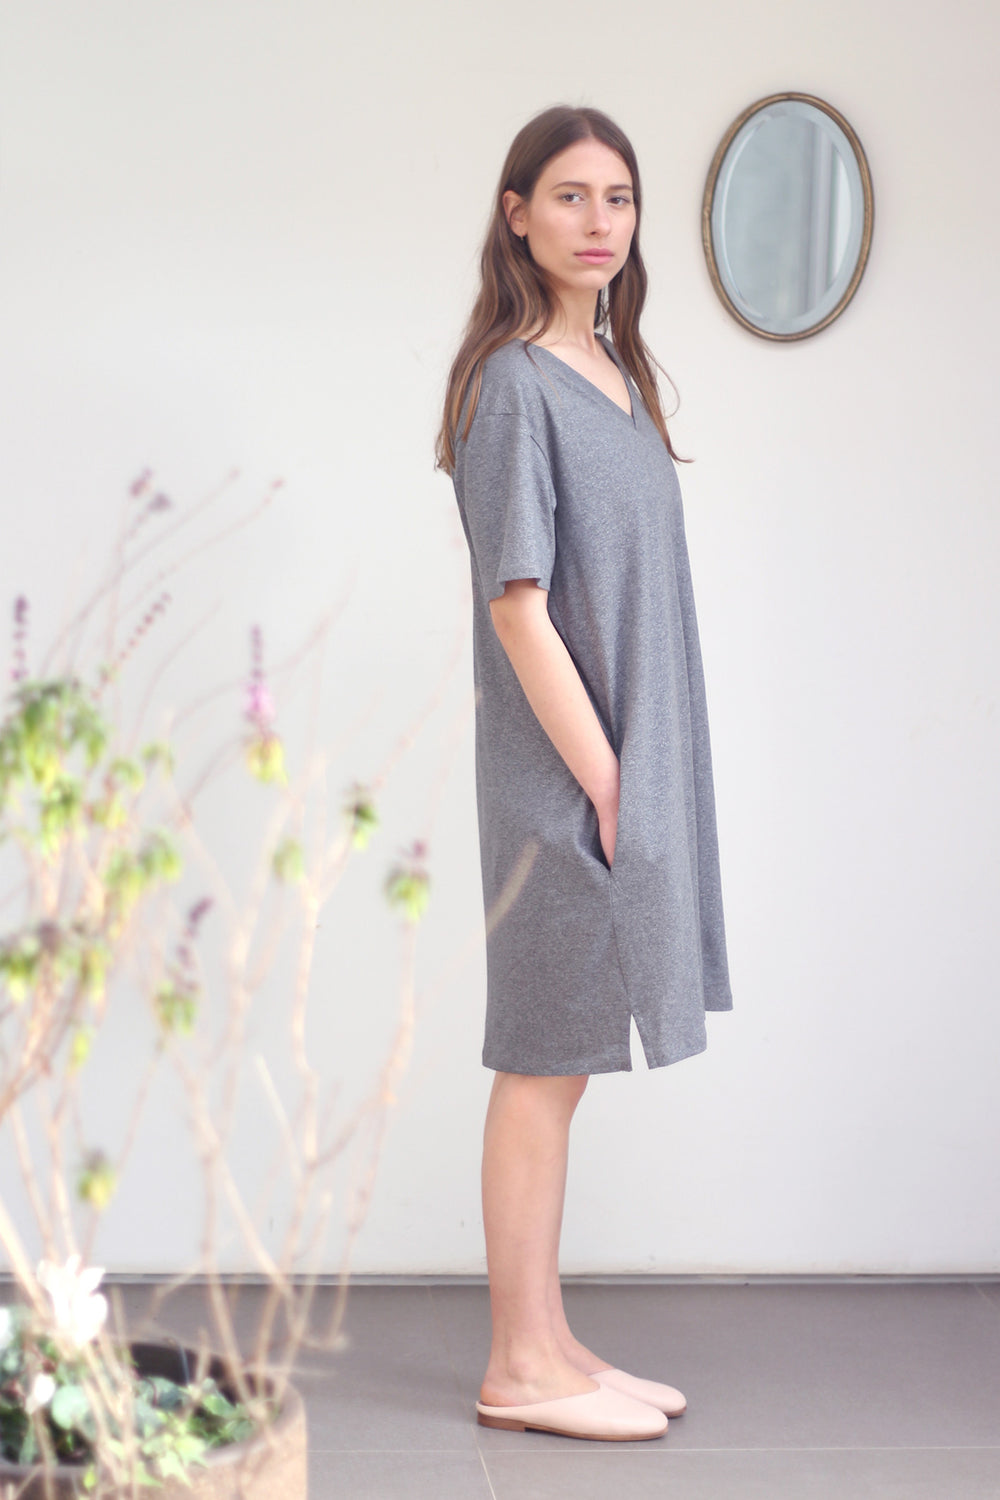 T shirt dress in sparkly grey